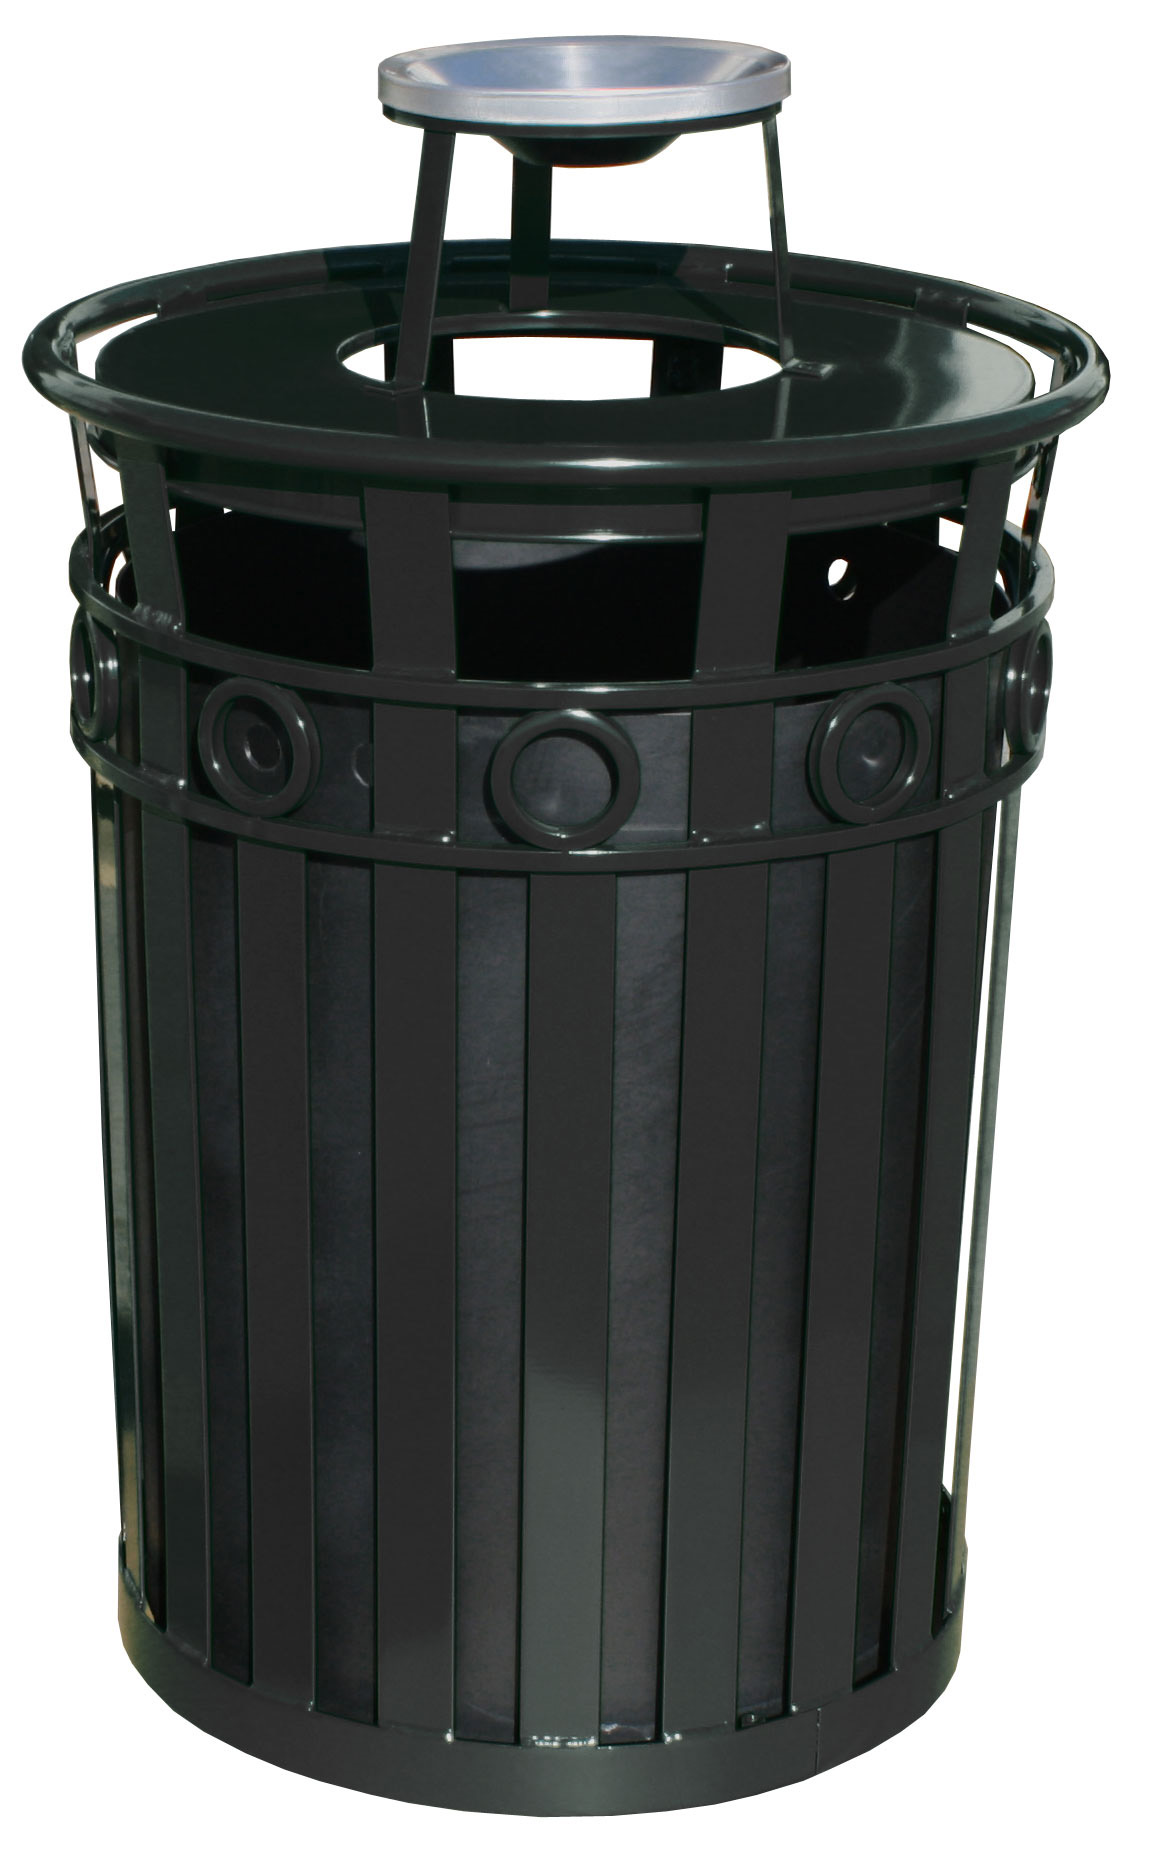 Witt Industries M3600-R-AT-BK 40-Gallon Outdoor Flat Bar Trash Can w/ Ash Top Lid, Black